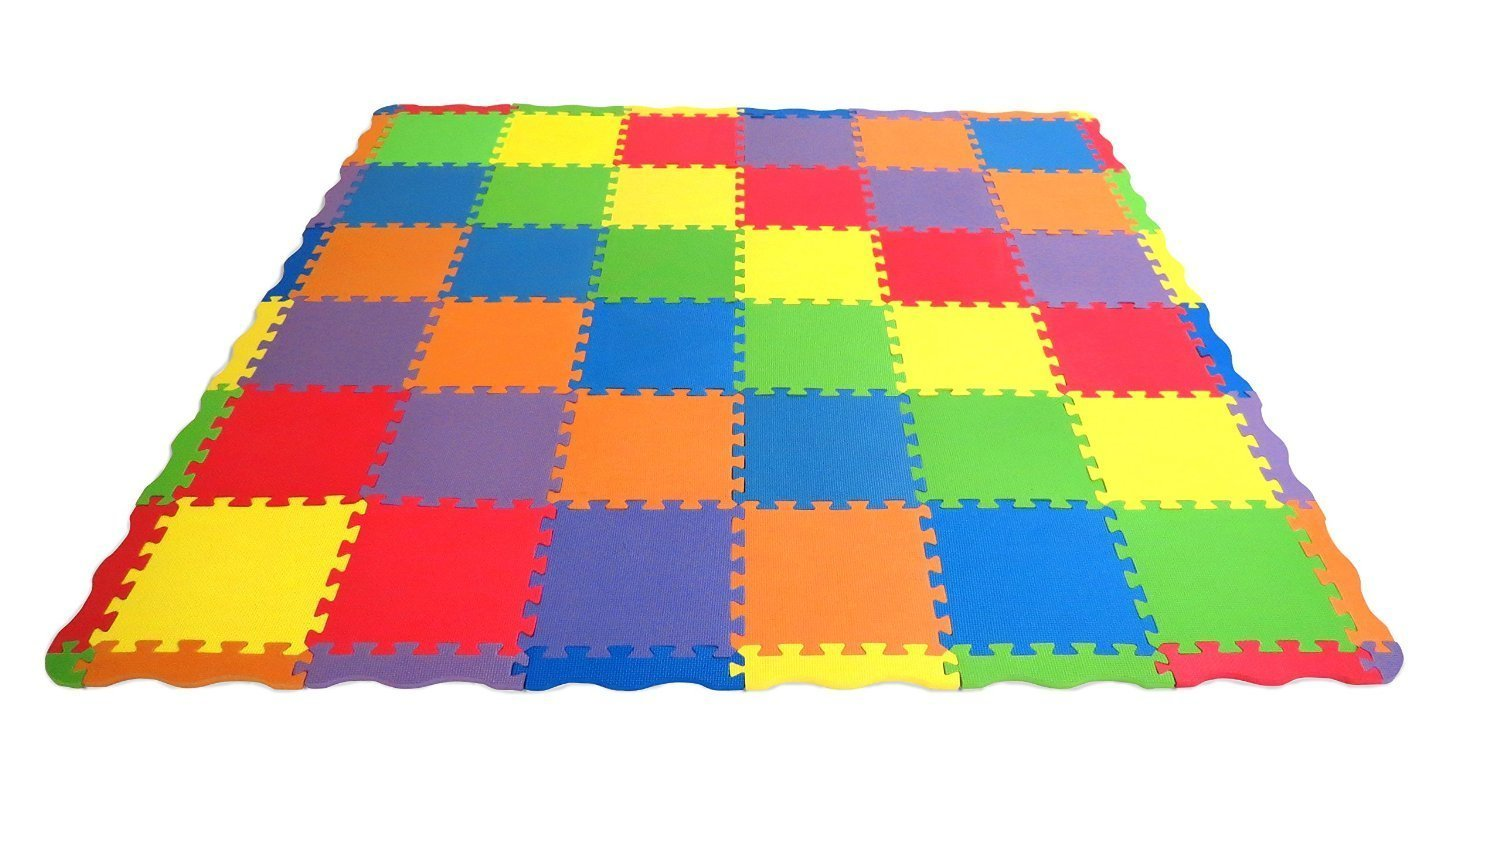 amazoncom  edushape edutiles  piece solid play mats each  - amazoncom  edushape edutiles  piece solid play mats each tilemeasures  x    edges   corners total  pieces  baby